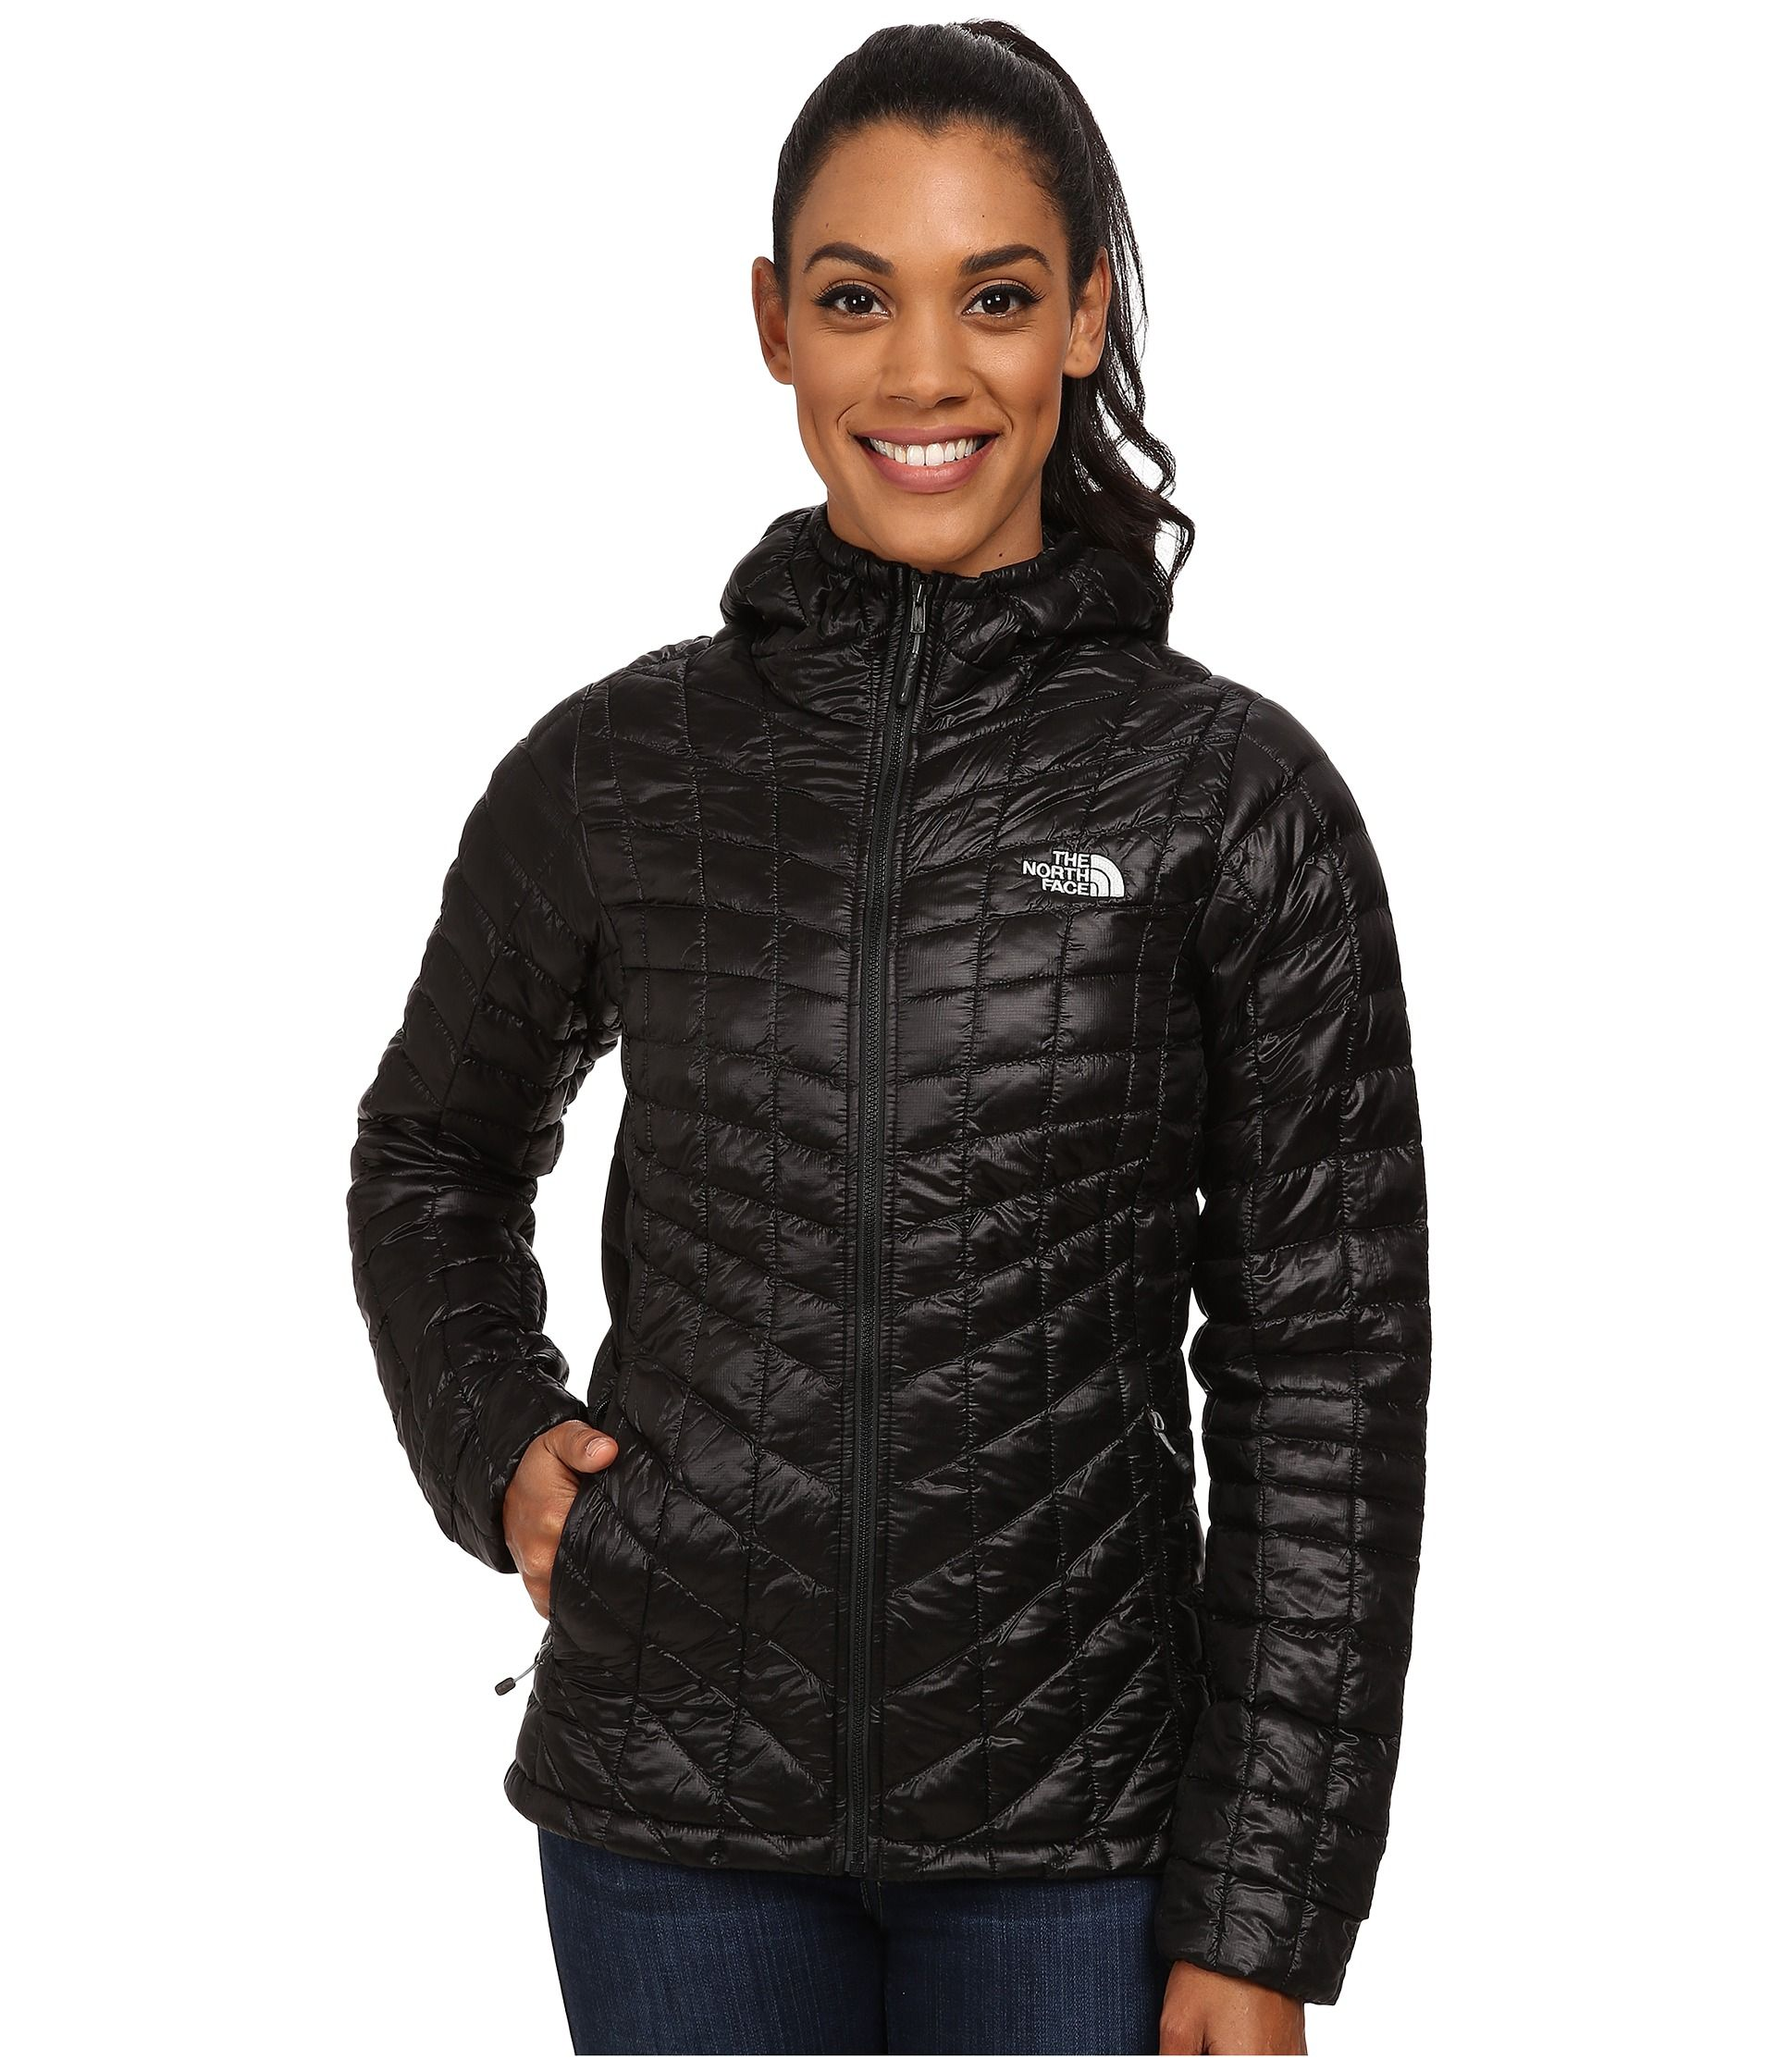 The North Face ThermoBall™ Hoodie | Insulated jacket | Pinterest ...